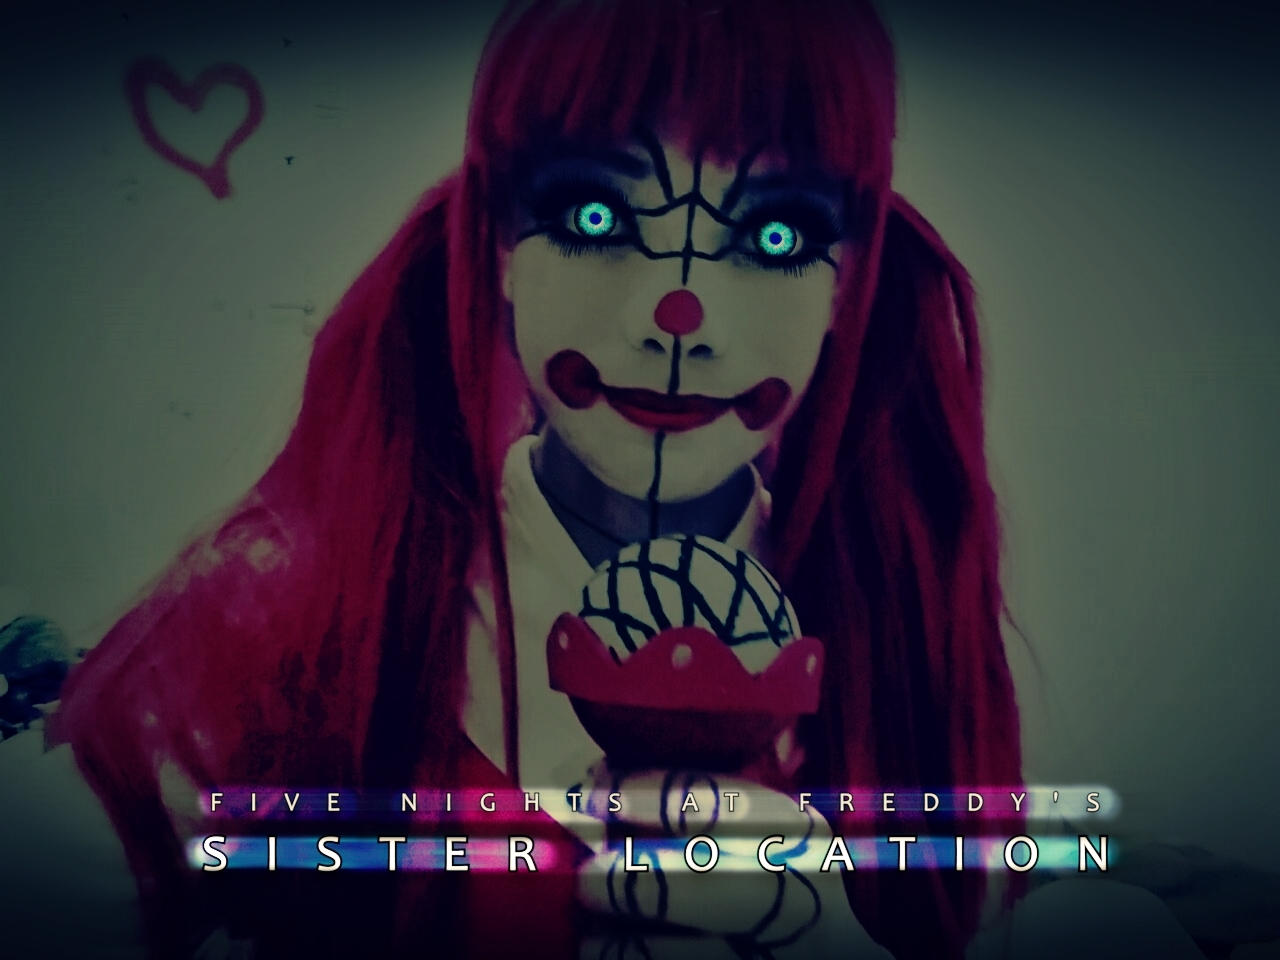 Fnaf Tits circus baby fnaf cosplay - random photo gallery